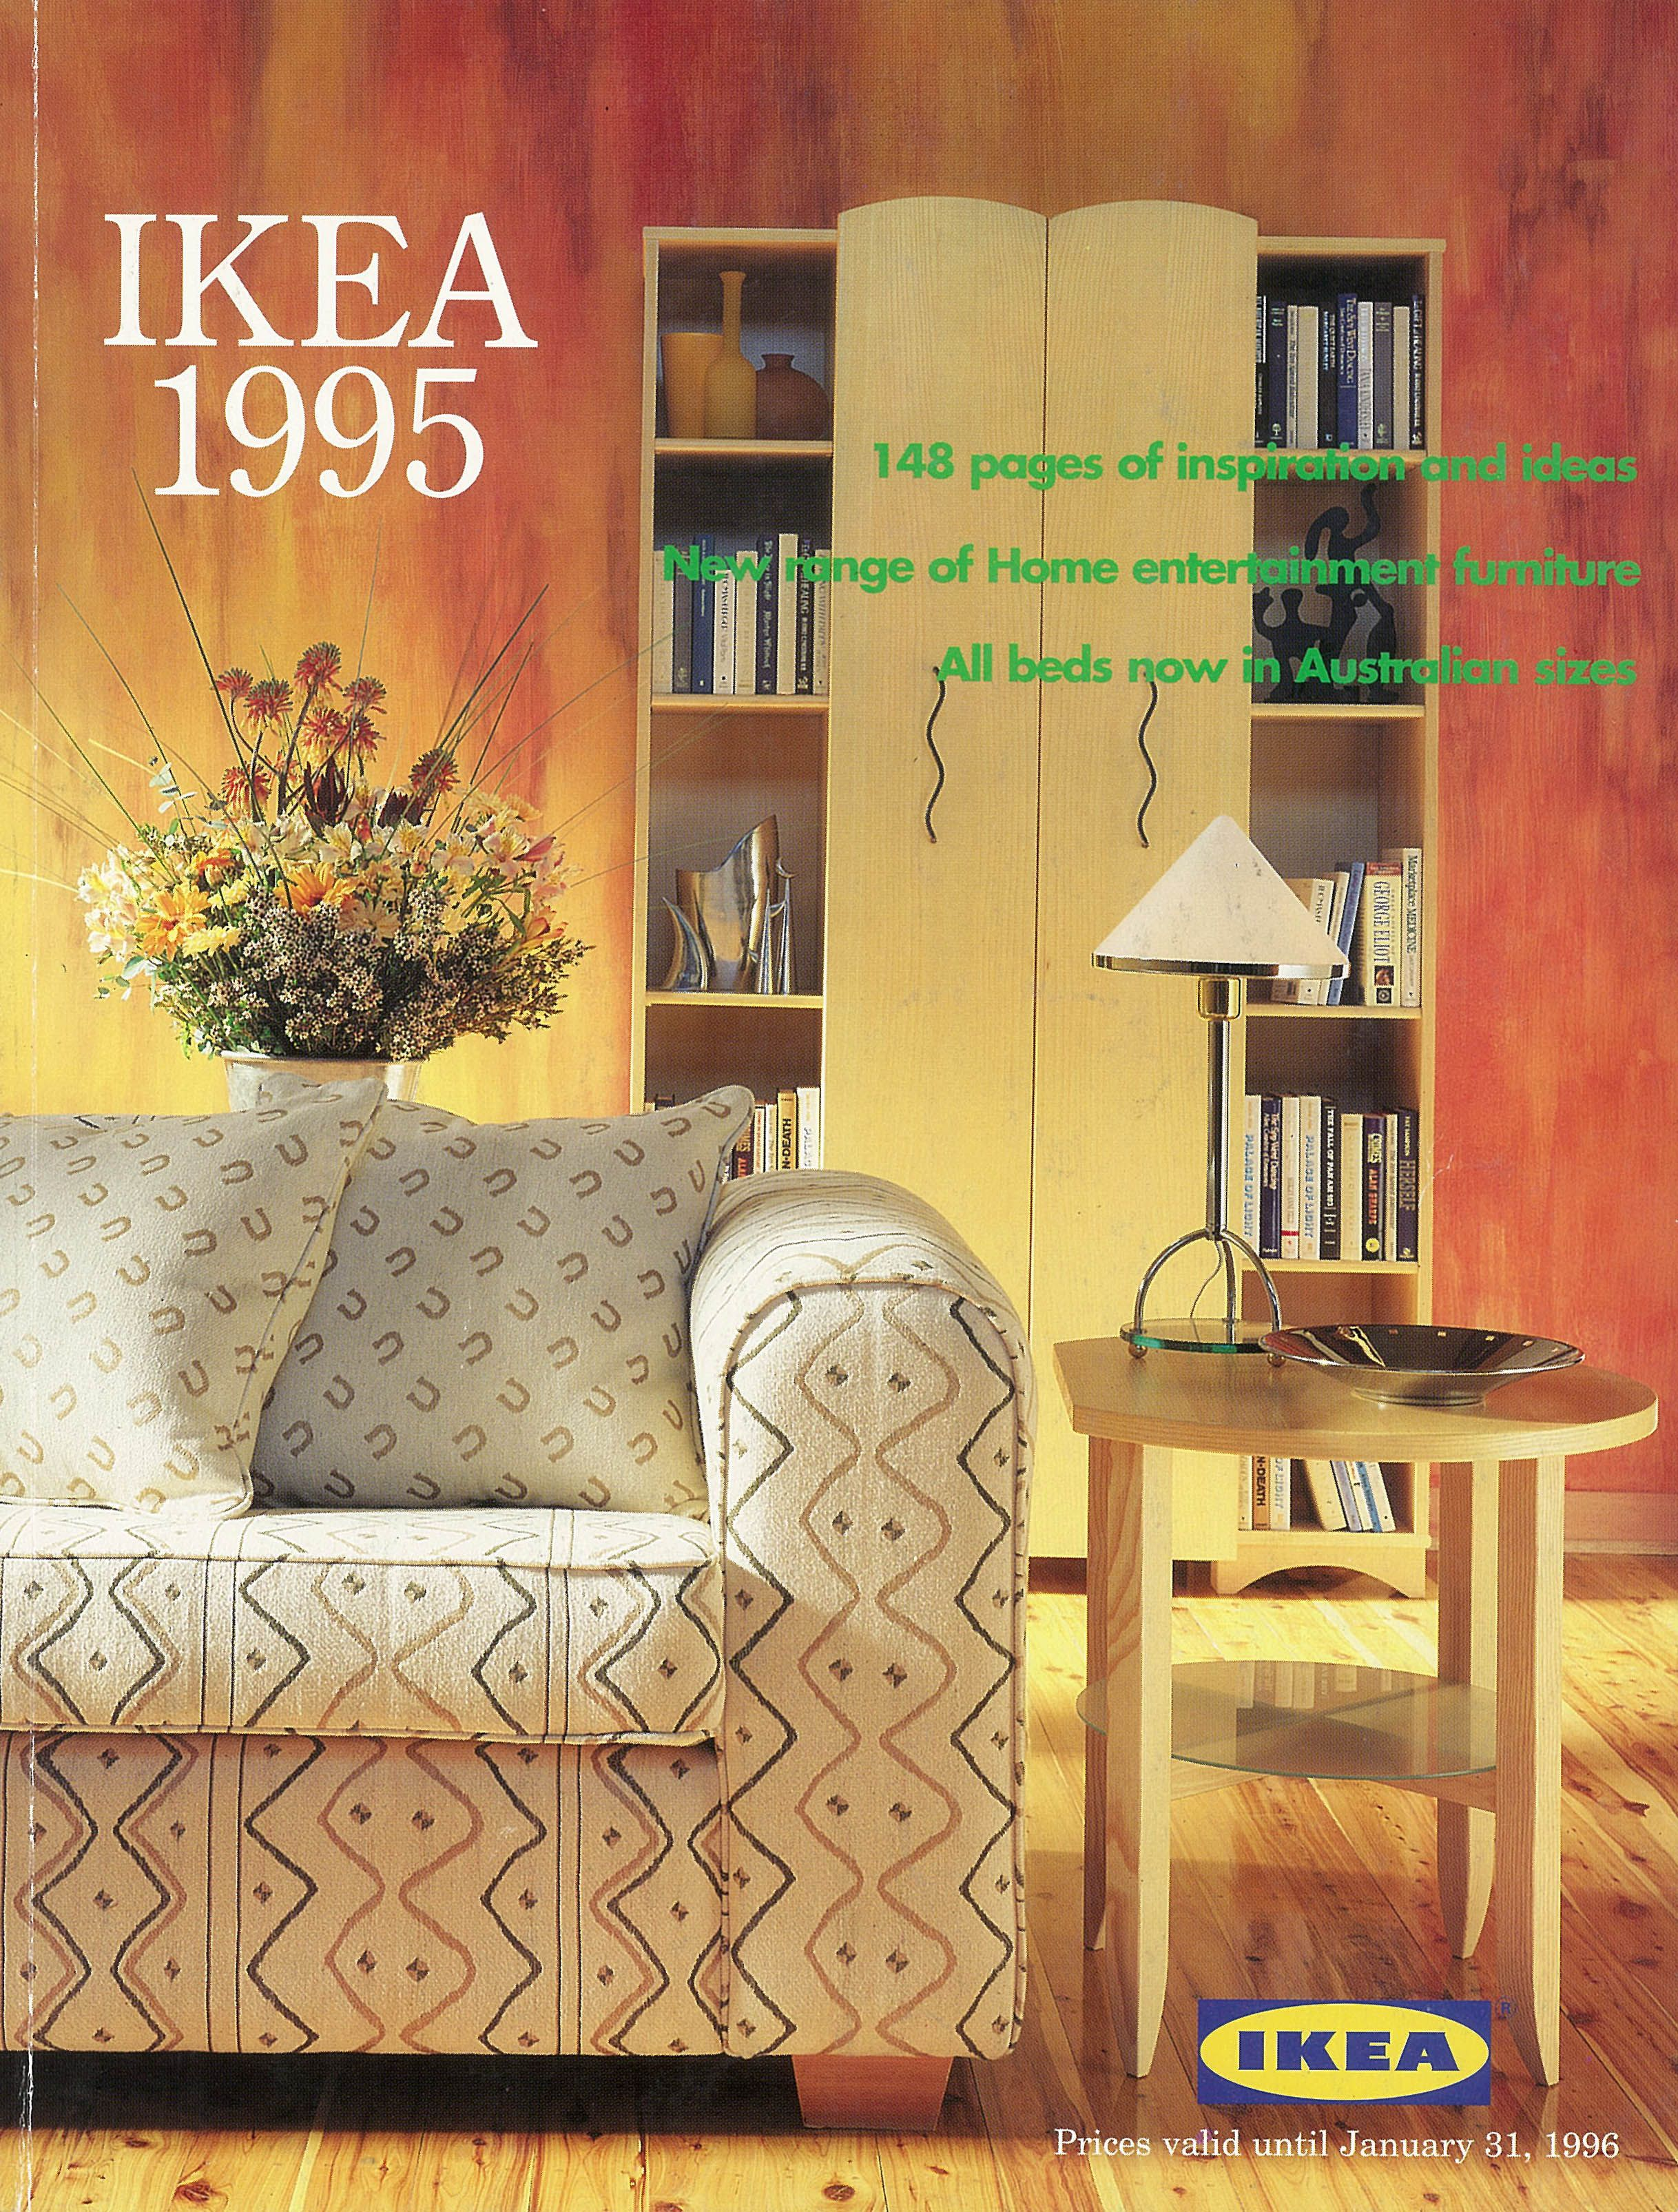 The 1995 Ikea Catalogue Architecture Sketch In 2019 Ikea